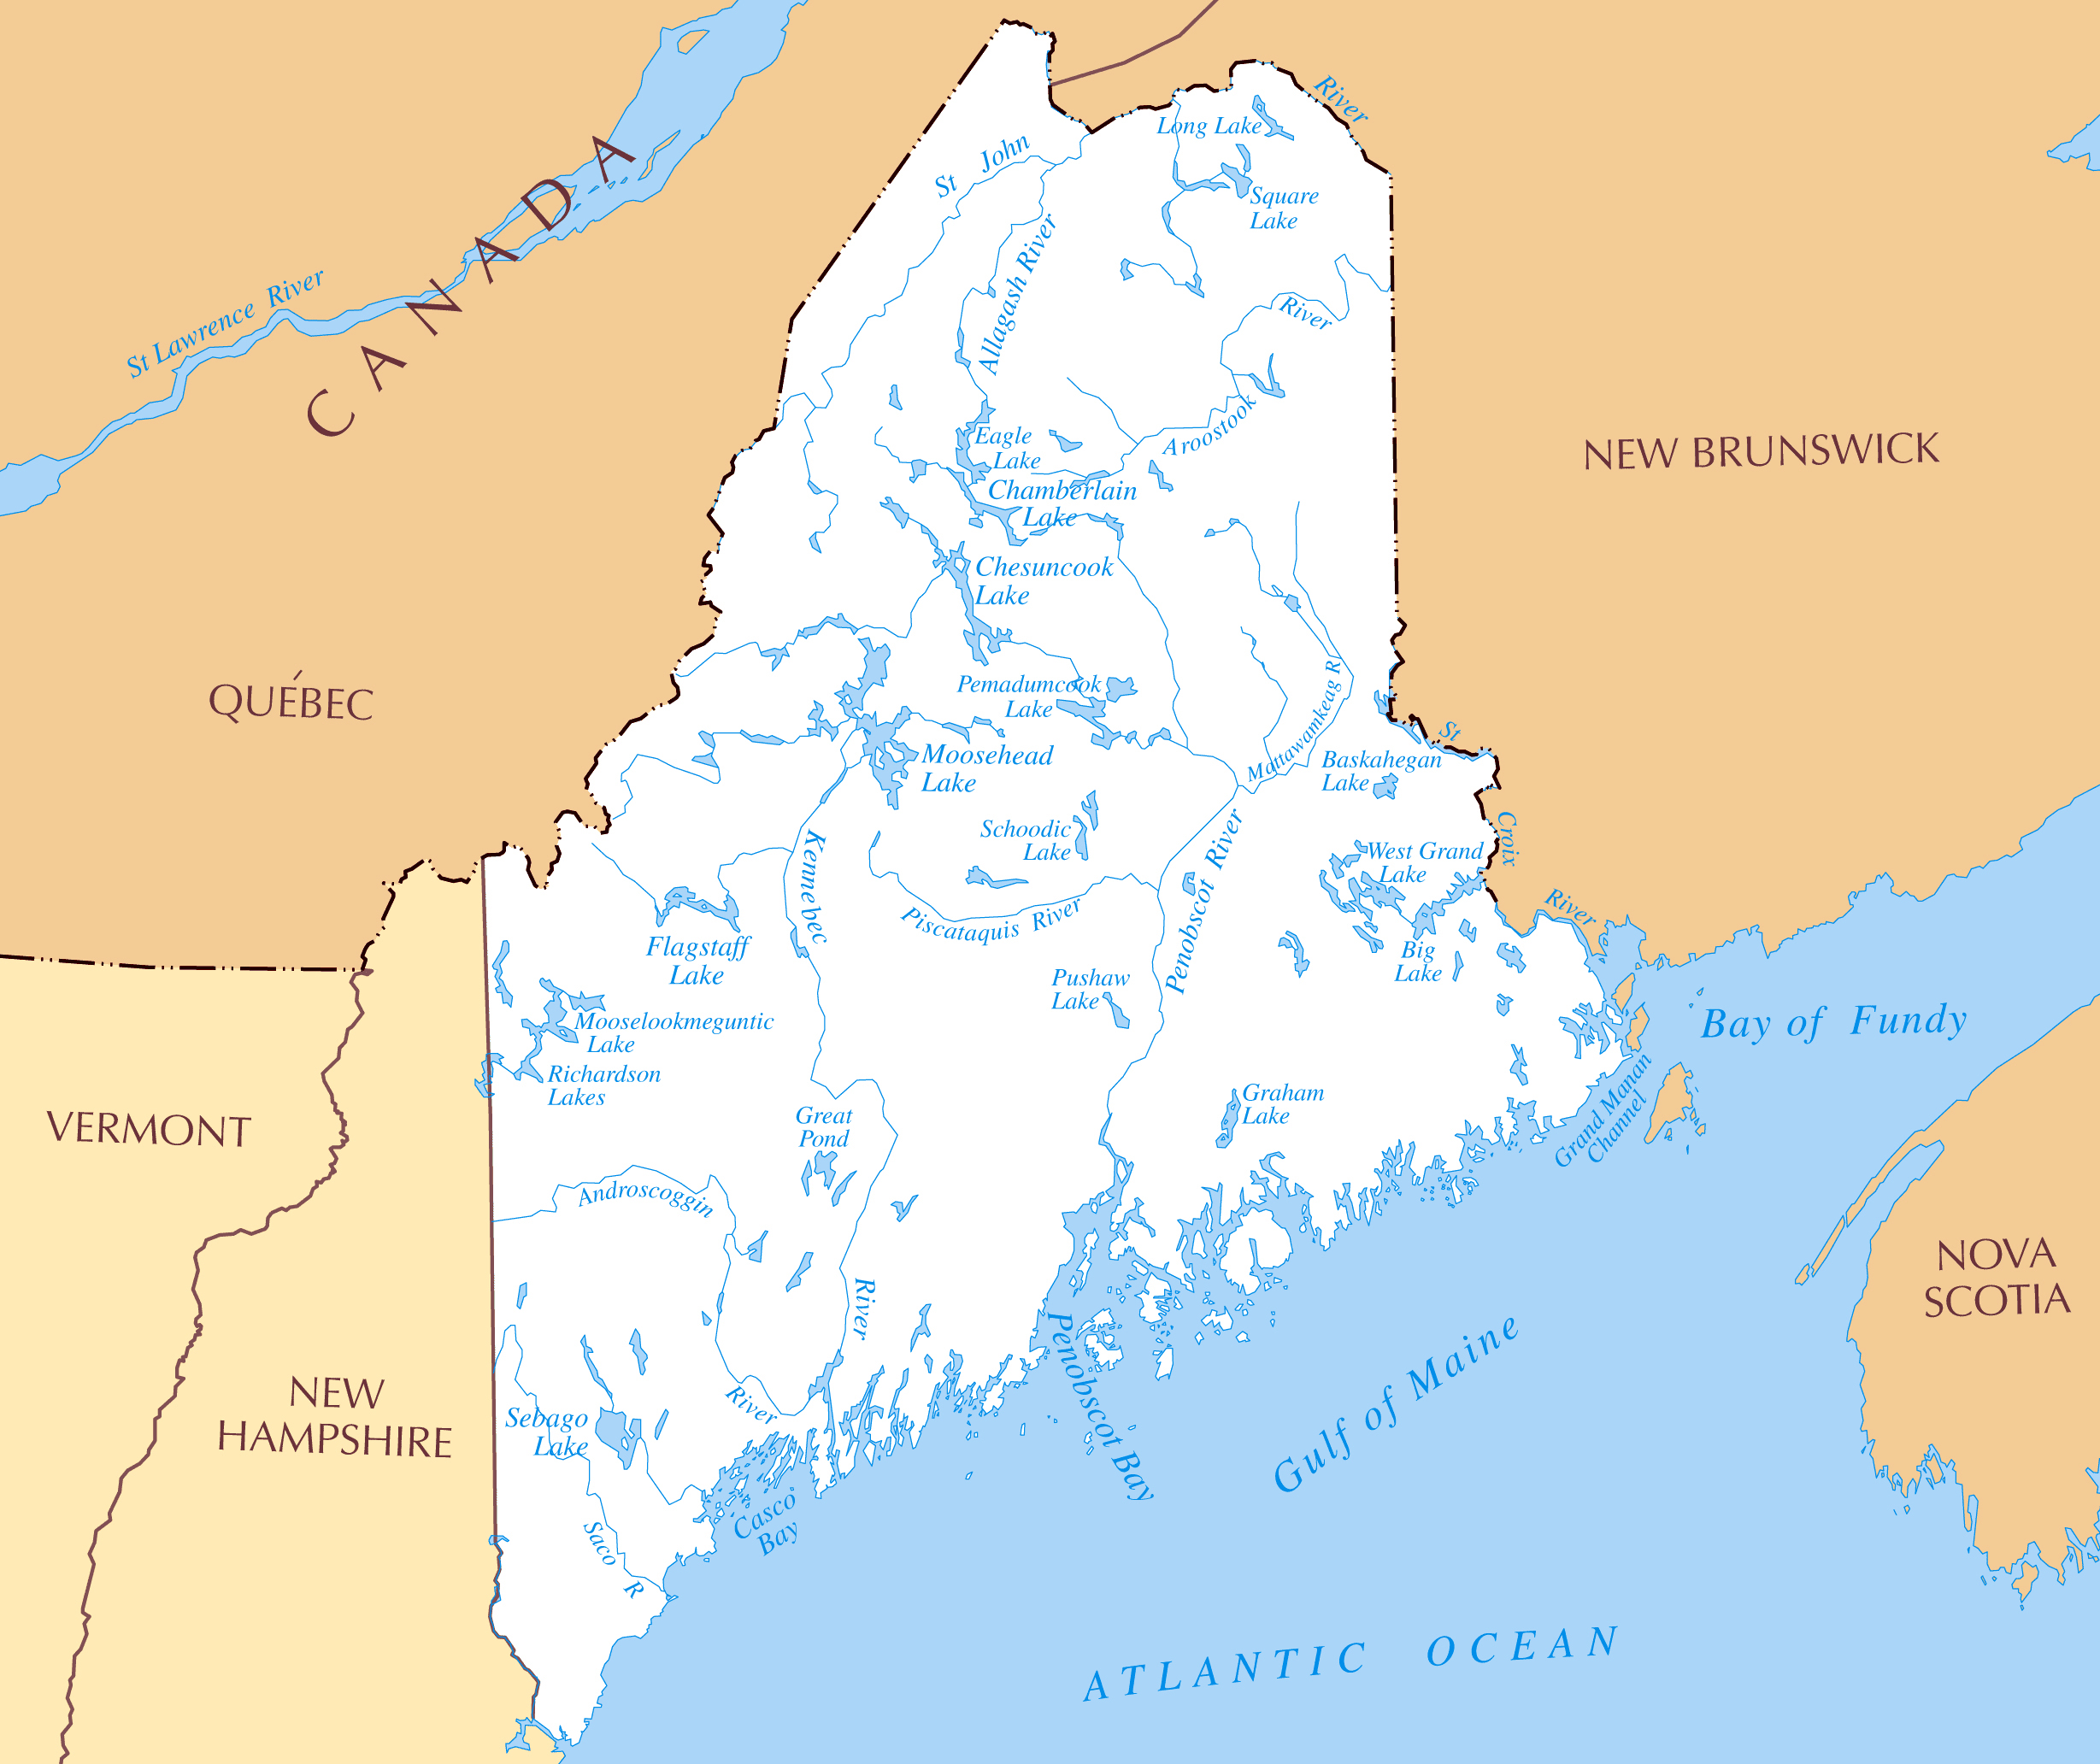 Large rivers and lakes map of Maine state | Maine state | USA | Maps ...